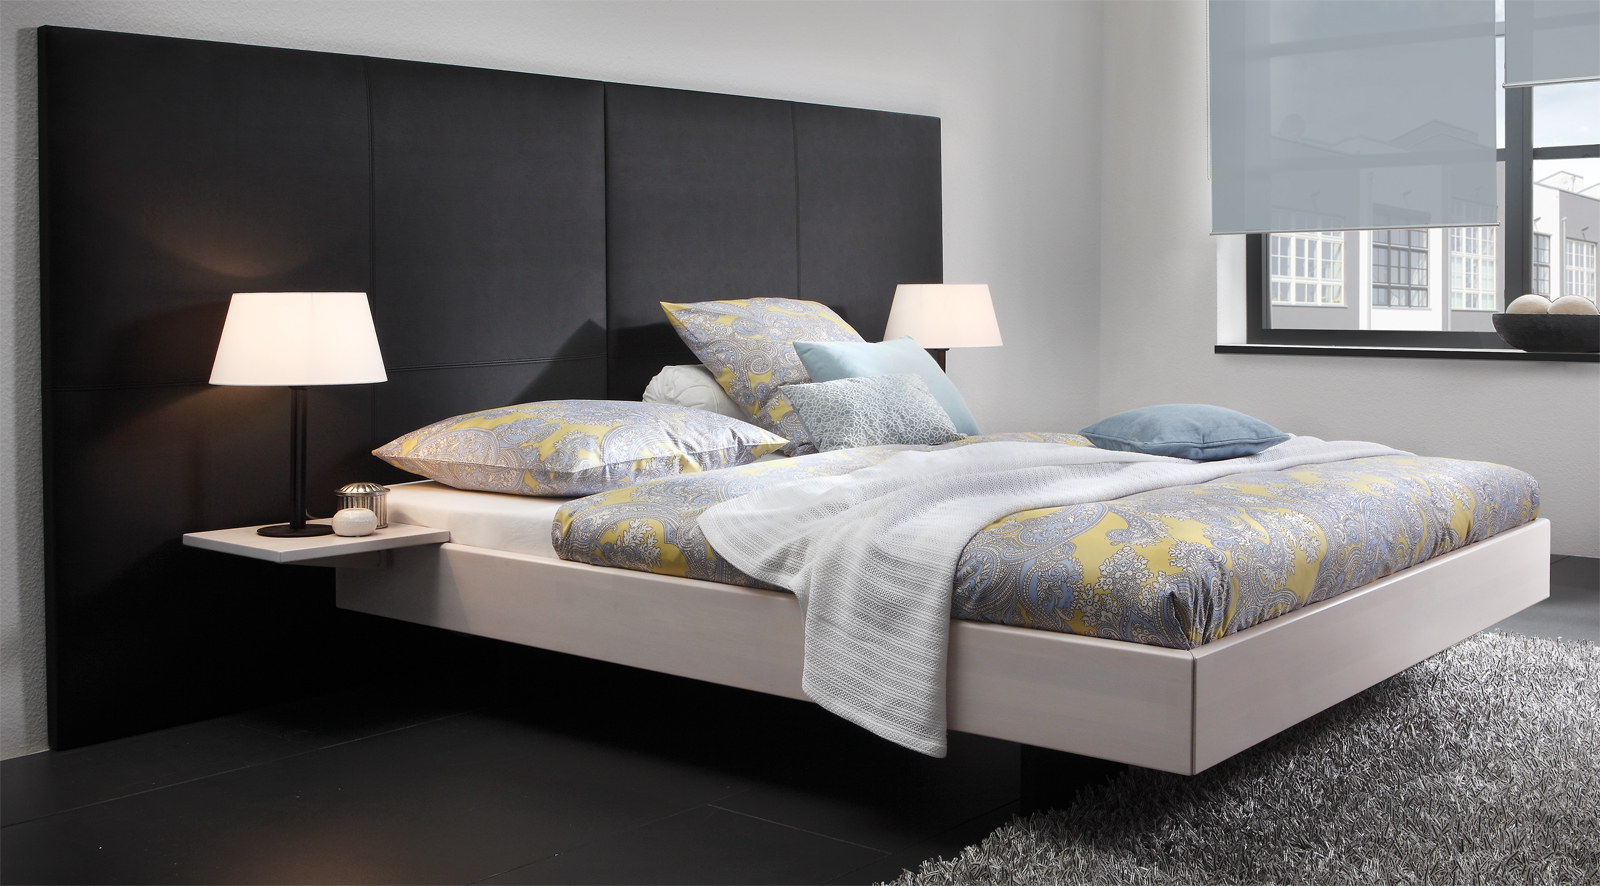 massivholzbett in schwebeoptik aus buche fortun. Black Bedroom Furniture Sets. Home Design Ideas